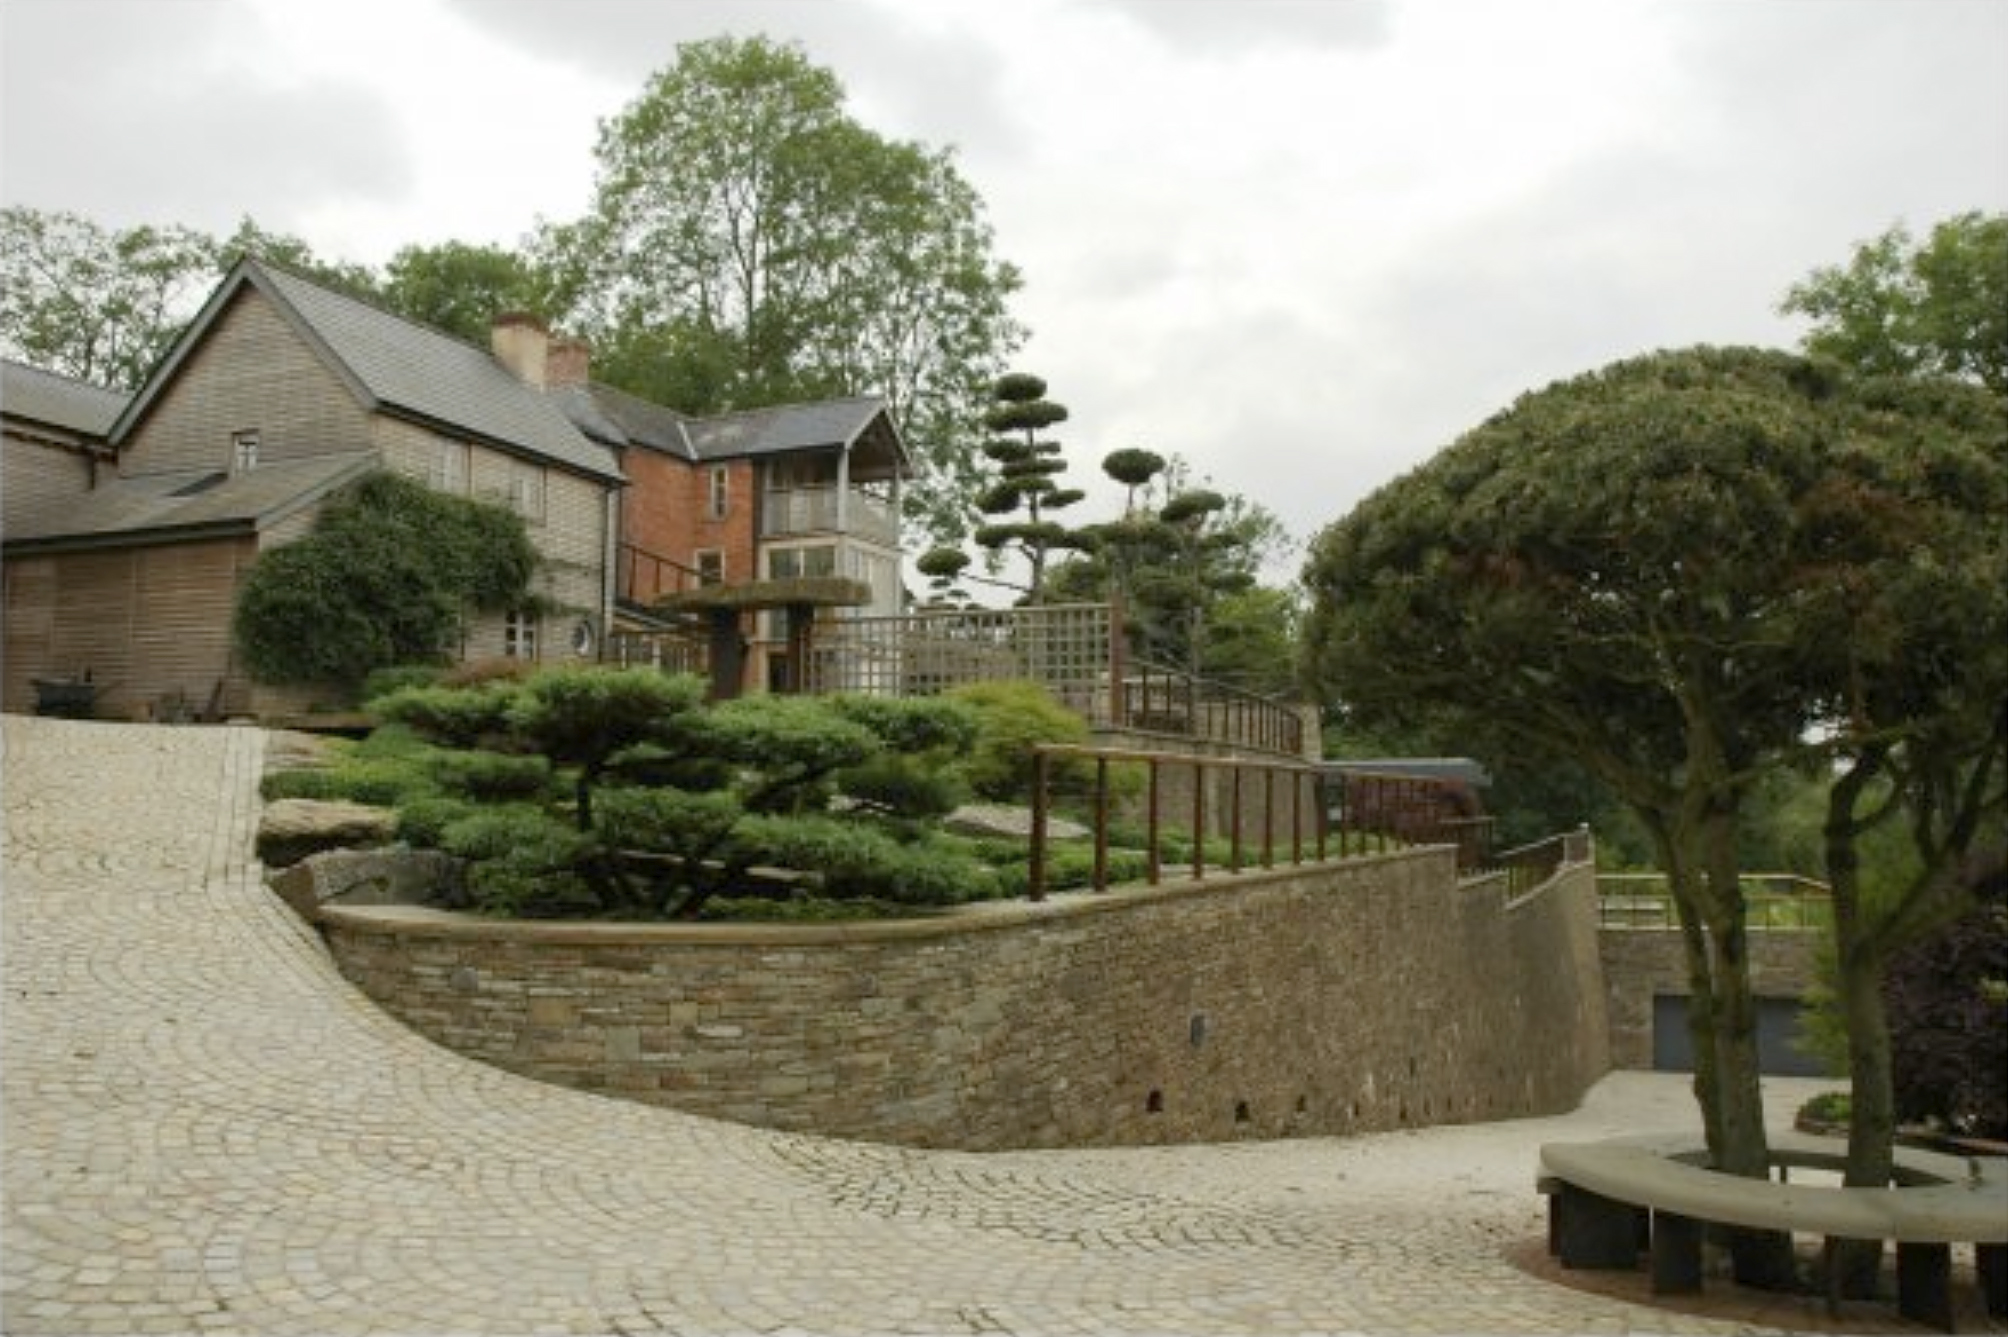 lawless hill cottage renovation extensions landscaping swimming pool ponds groundworks builder ross on wye.jpg